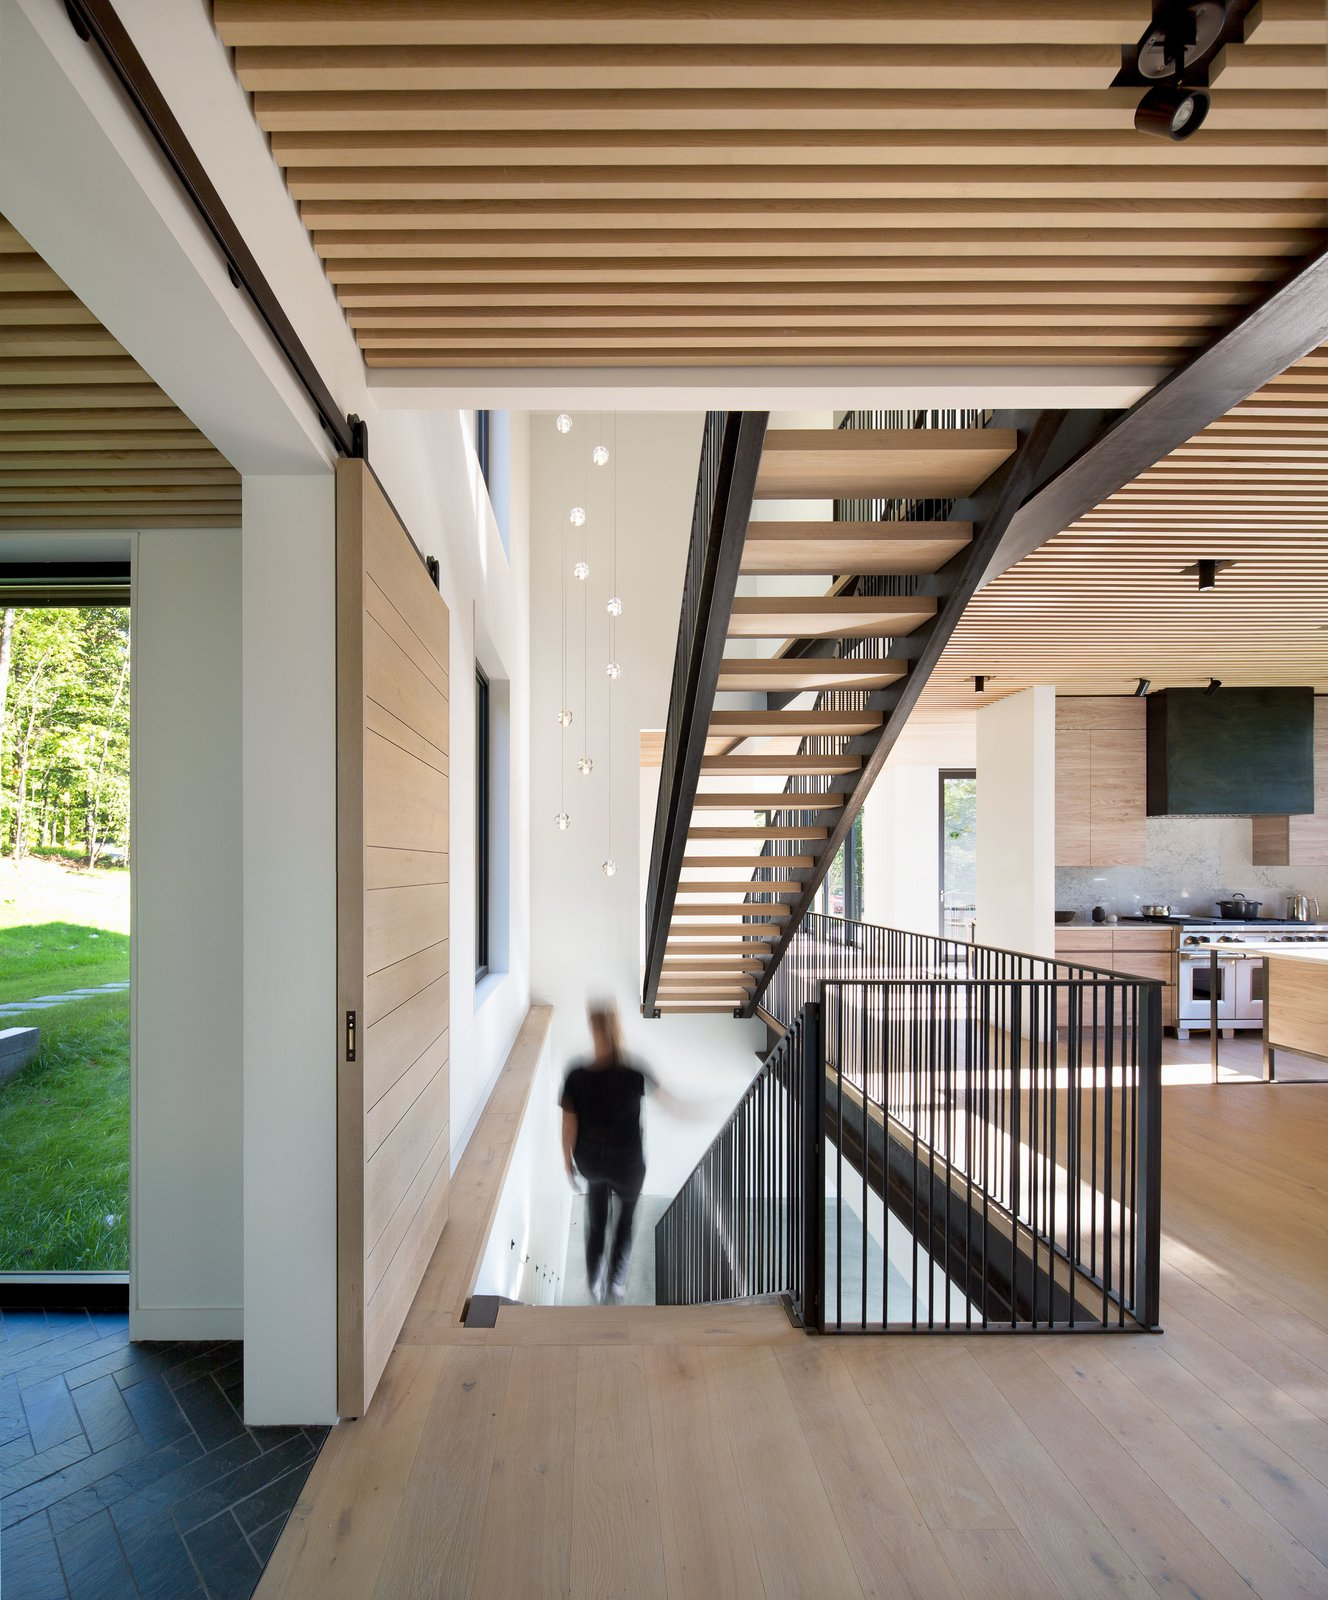 Staircase, Wood Tread, and Metal Railing  Elemental House by Elizabeth Herrmann Architecture + Design